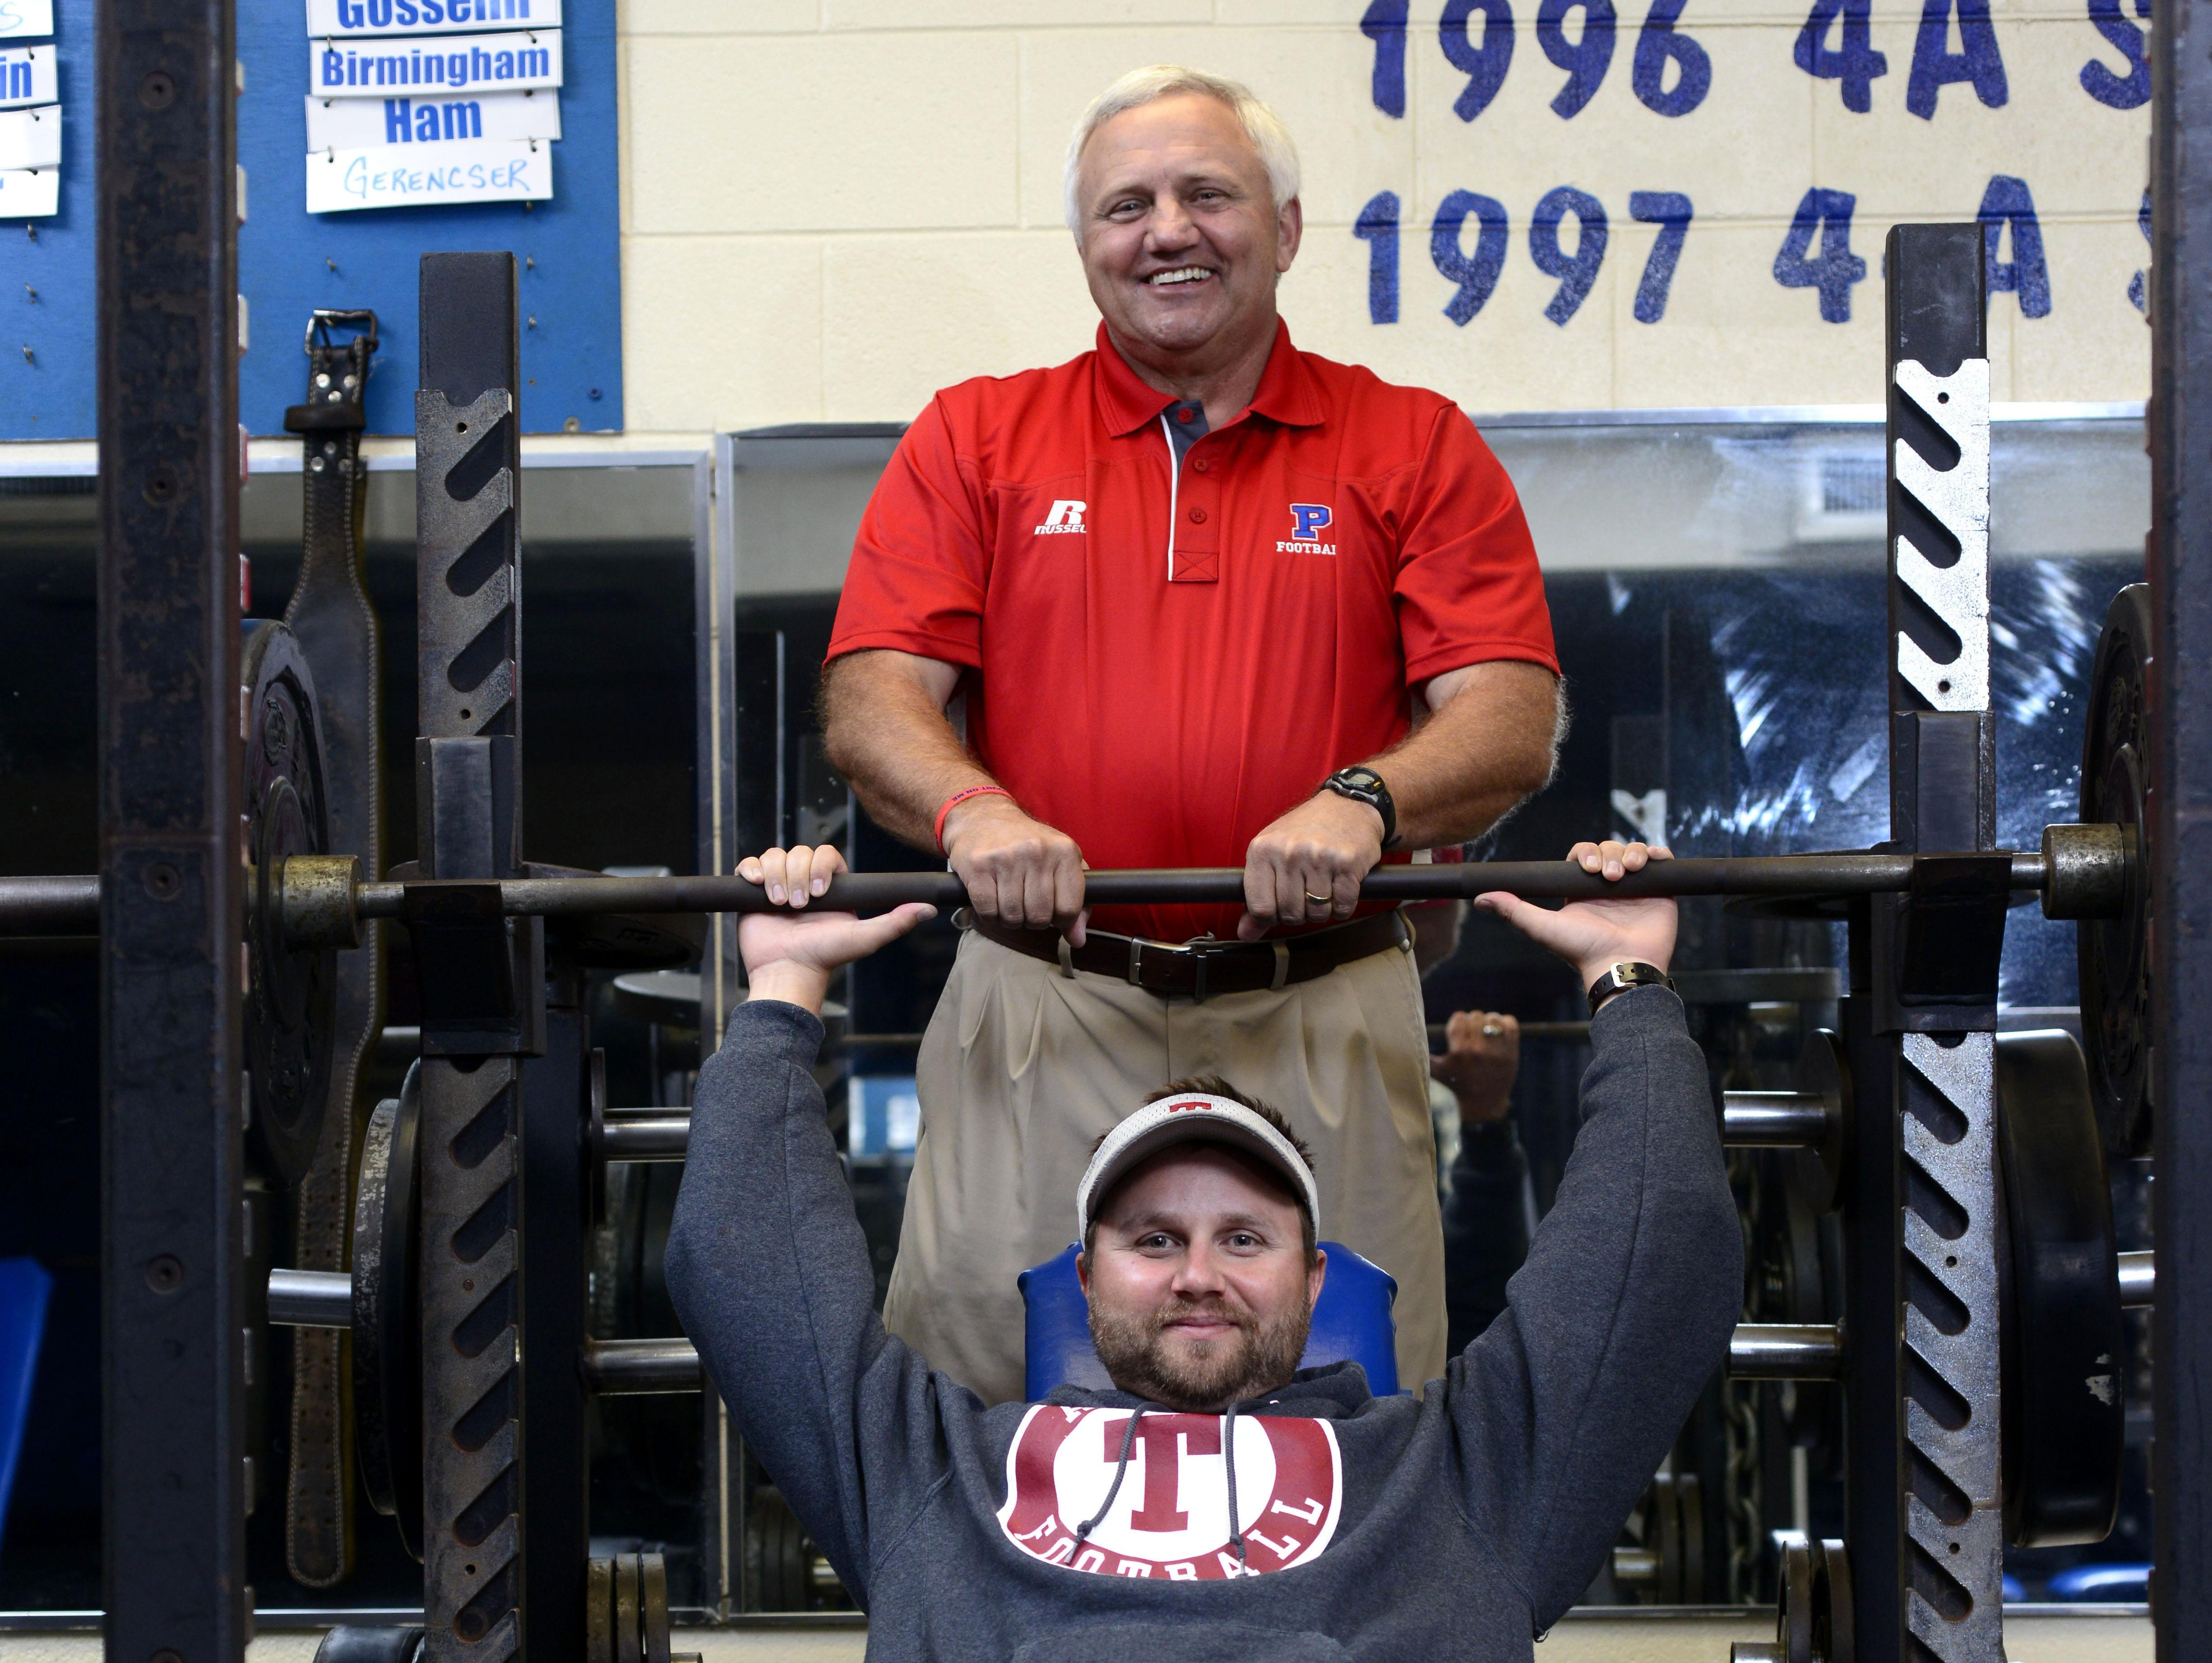 Coach Mickey Lindsey and the Pace Patriots face off against Coach Jay Lindsey and the Tate Aggies on Friday night. Though it is a rare father-son meeting on the field, both coaches agree it's not about them but about the teams.